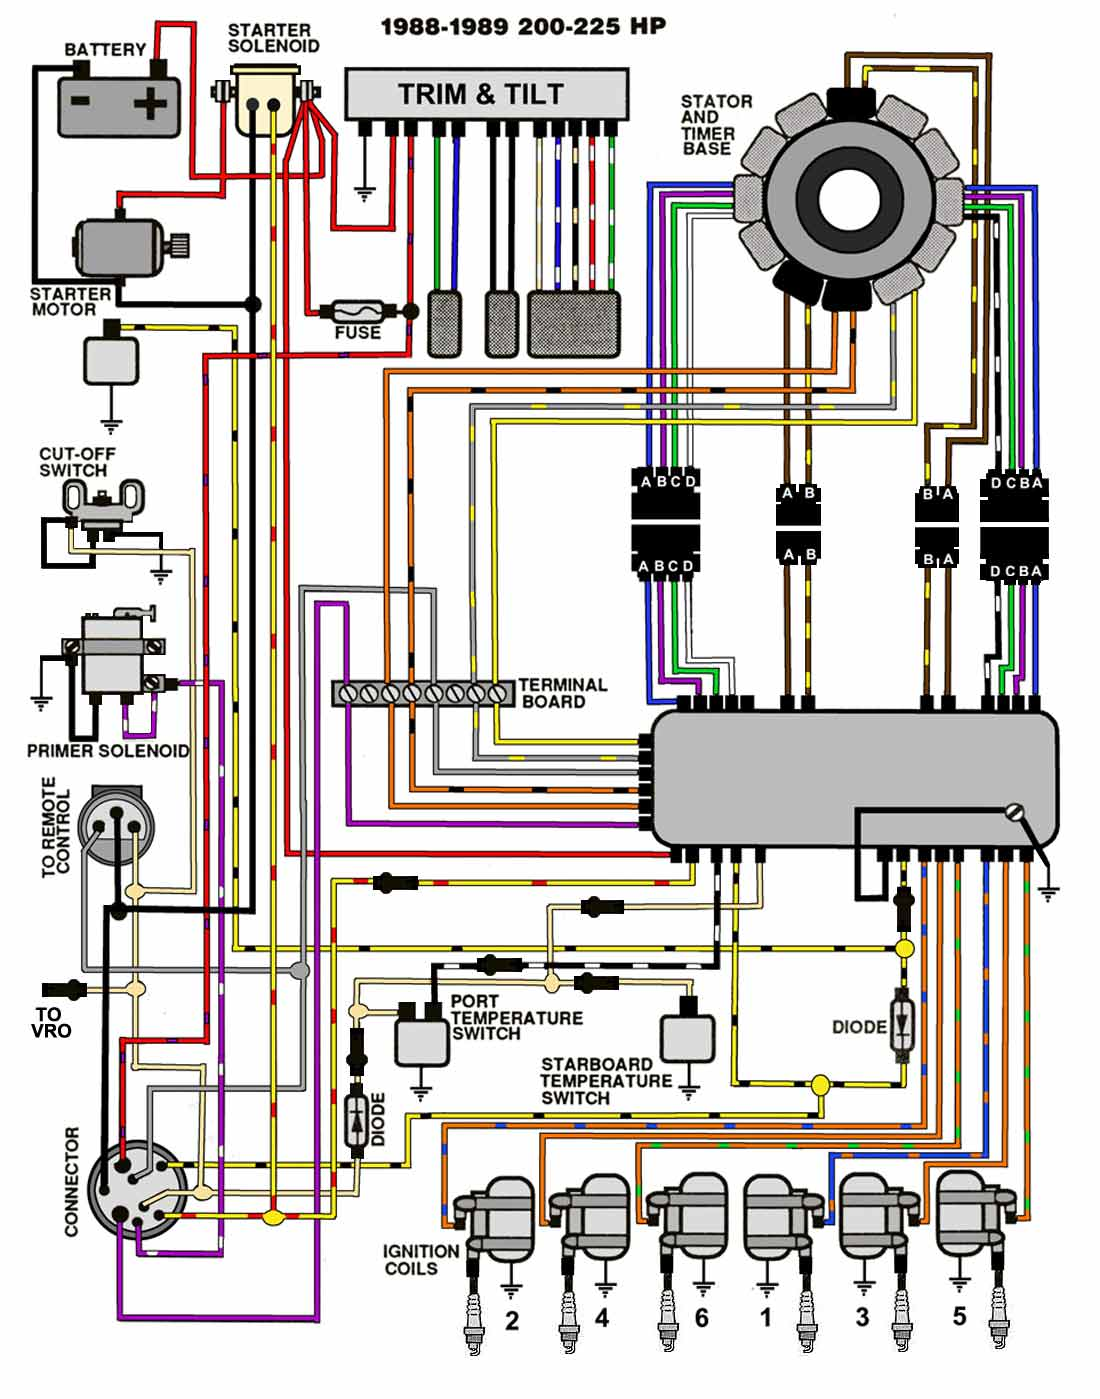 1988_89_200_225 1998 omc wiring diagram 1998 wiring diagrams 135 HP Evinrude Wiring Diagram at gsmportal.co